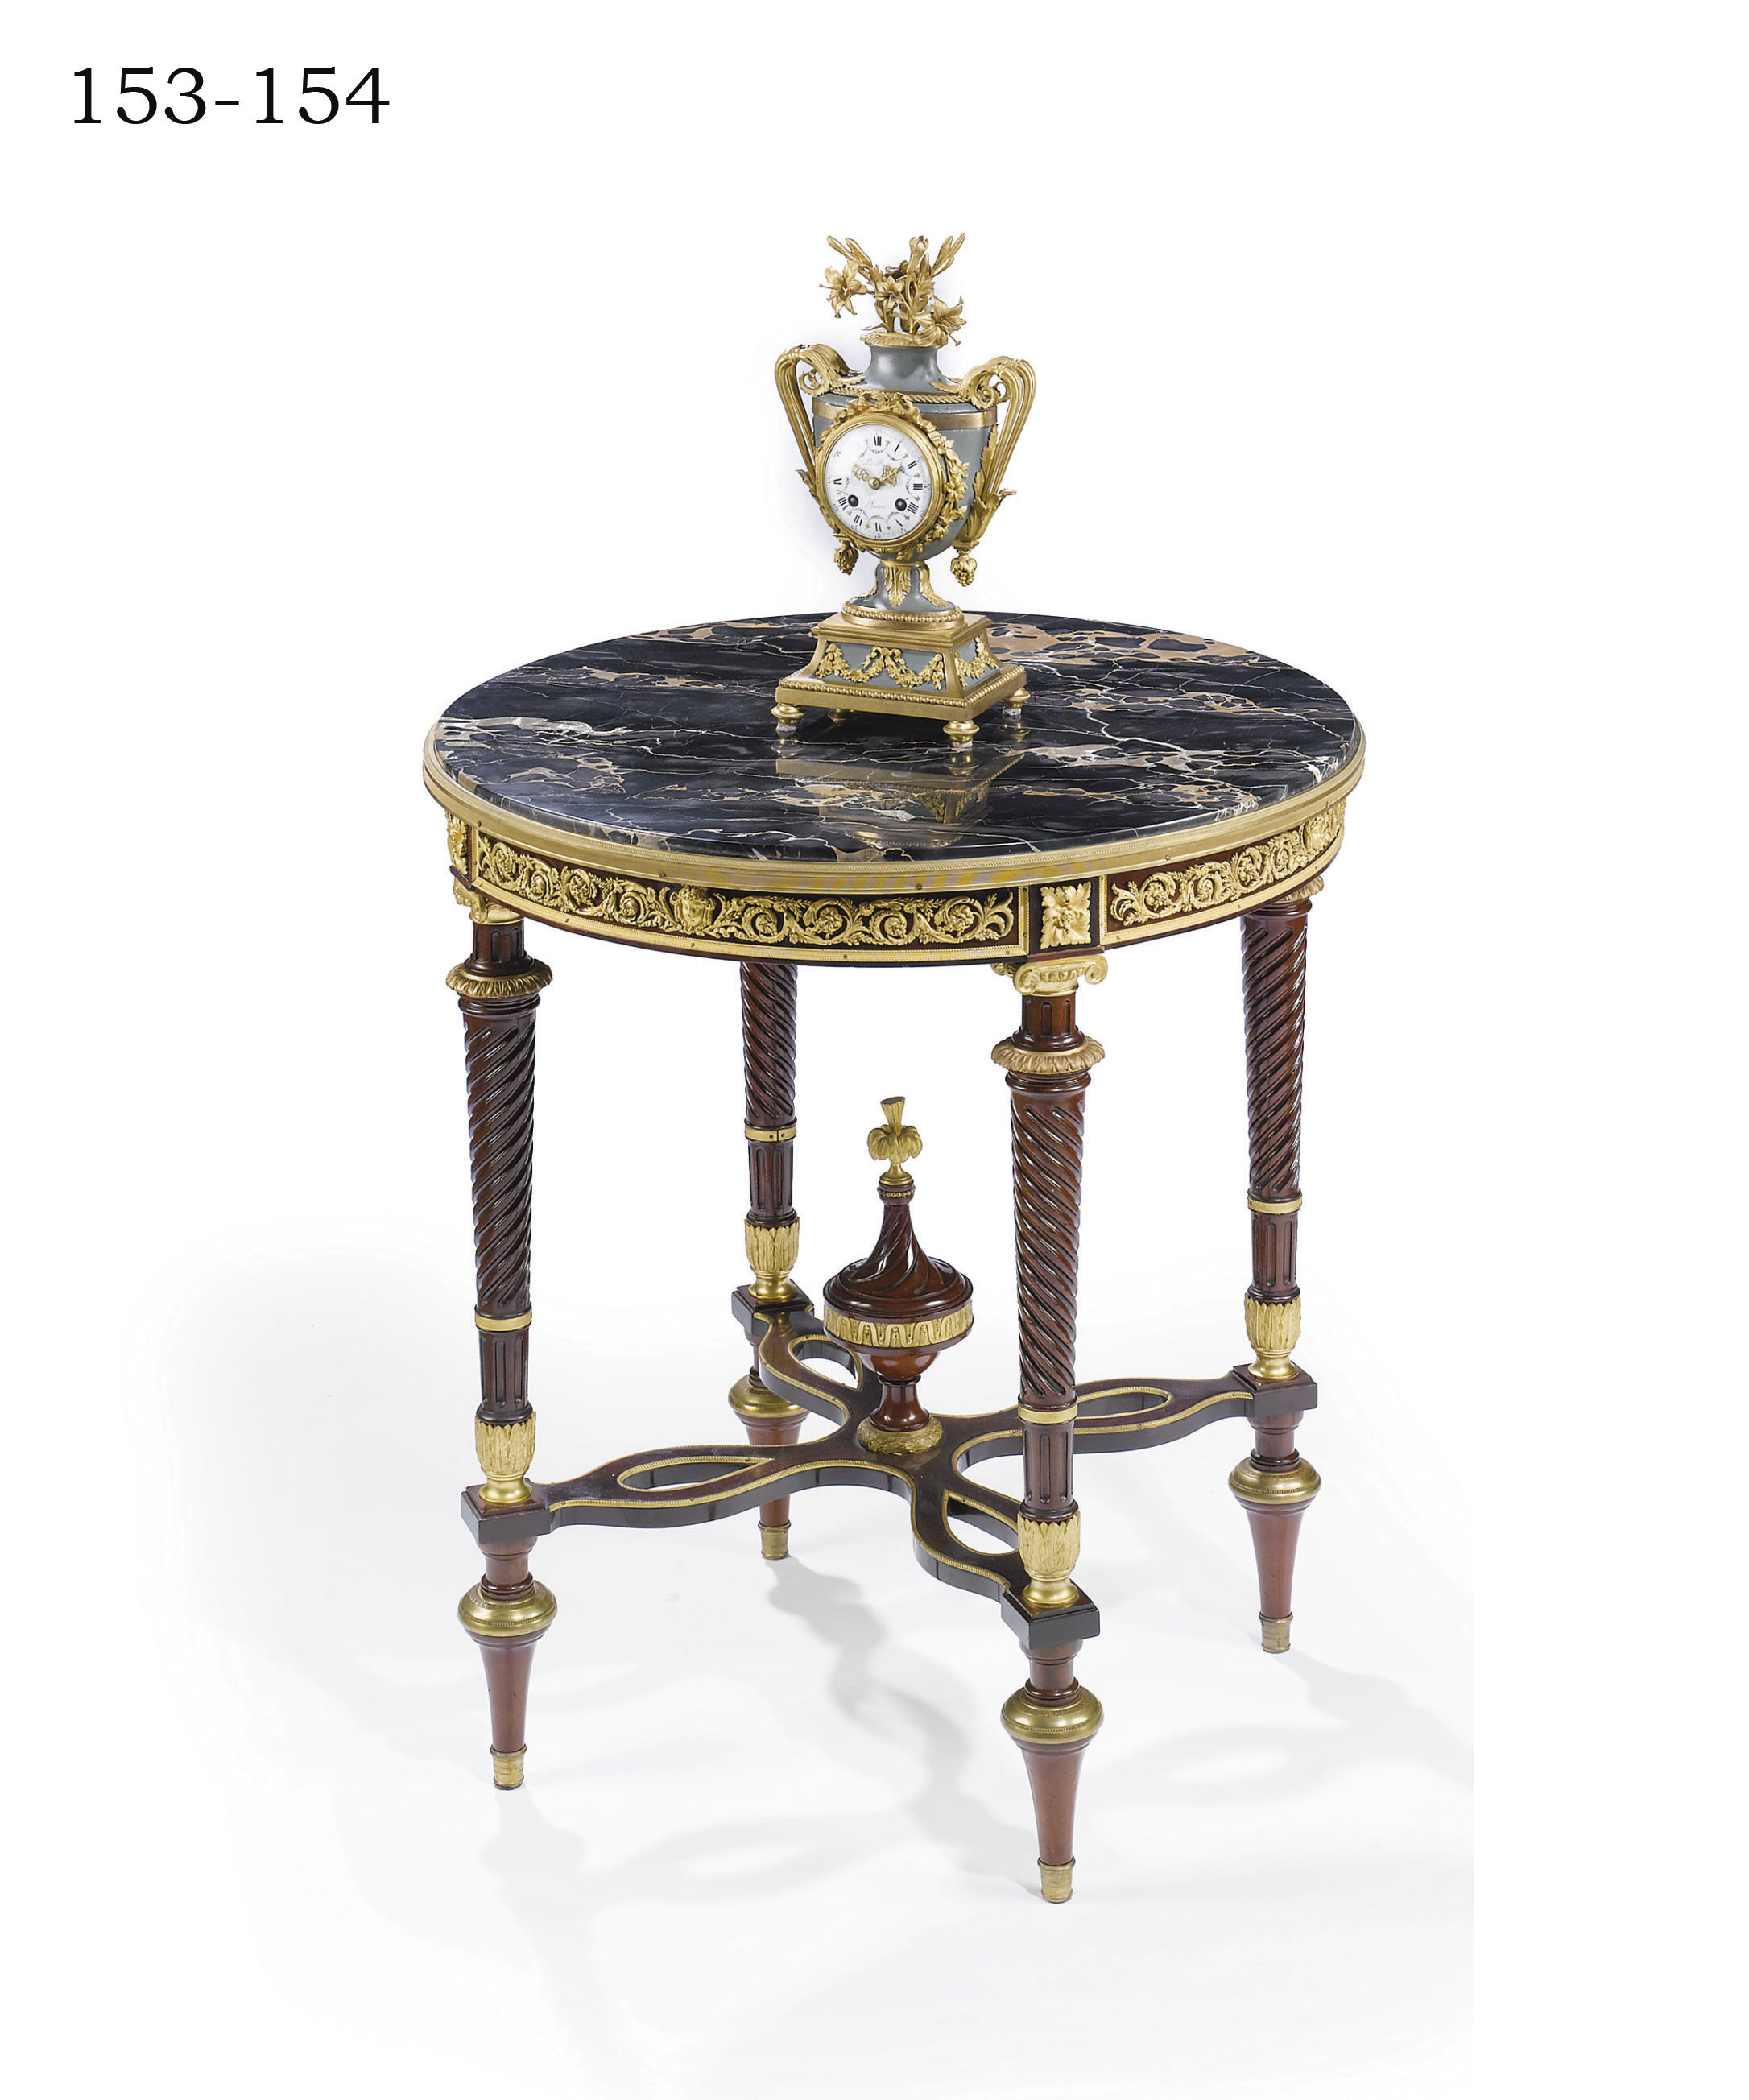 A FRENCH ORMOLU AND GREEN PATINATED MANTEL CLOCK